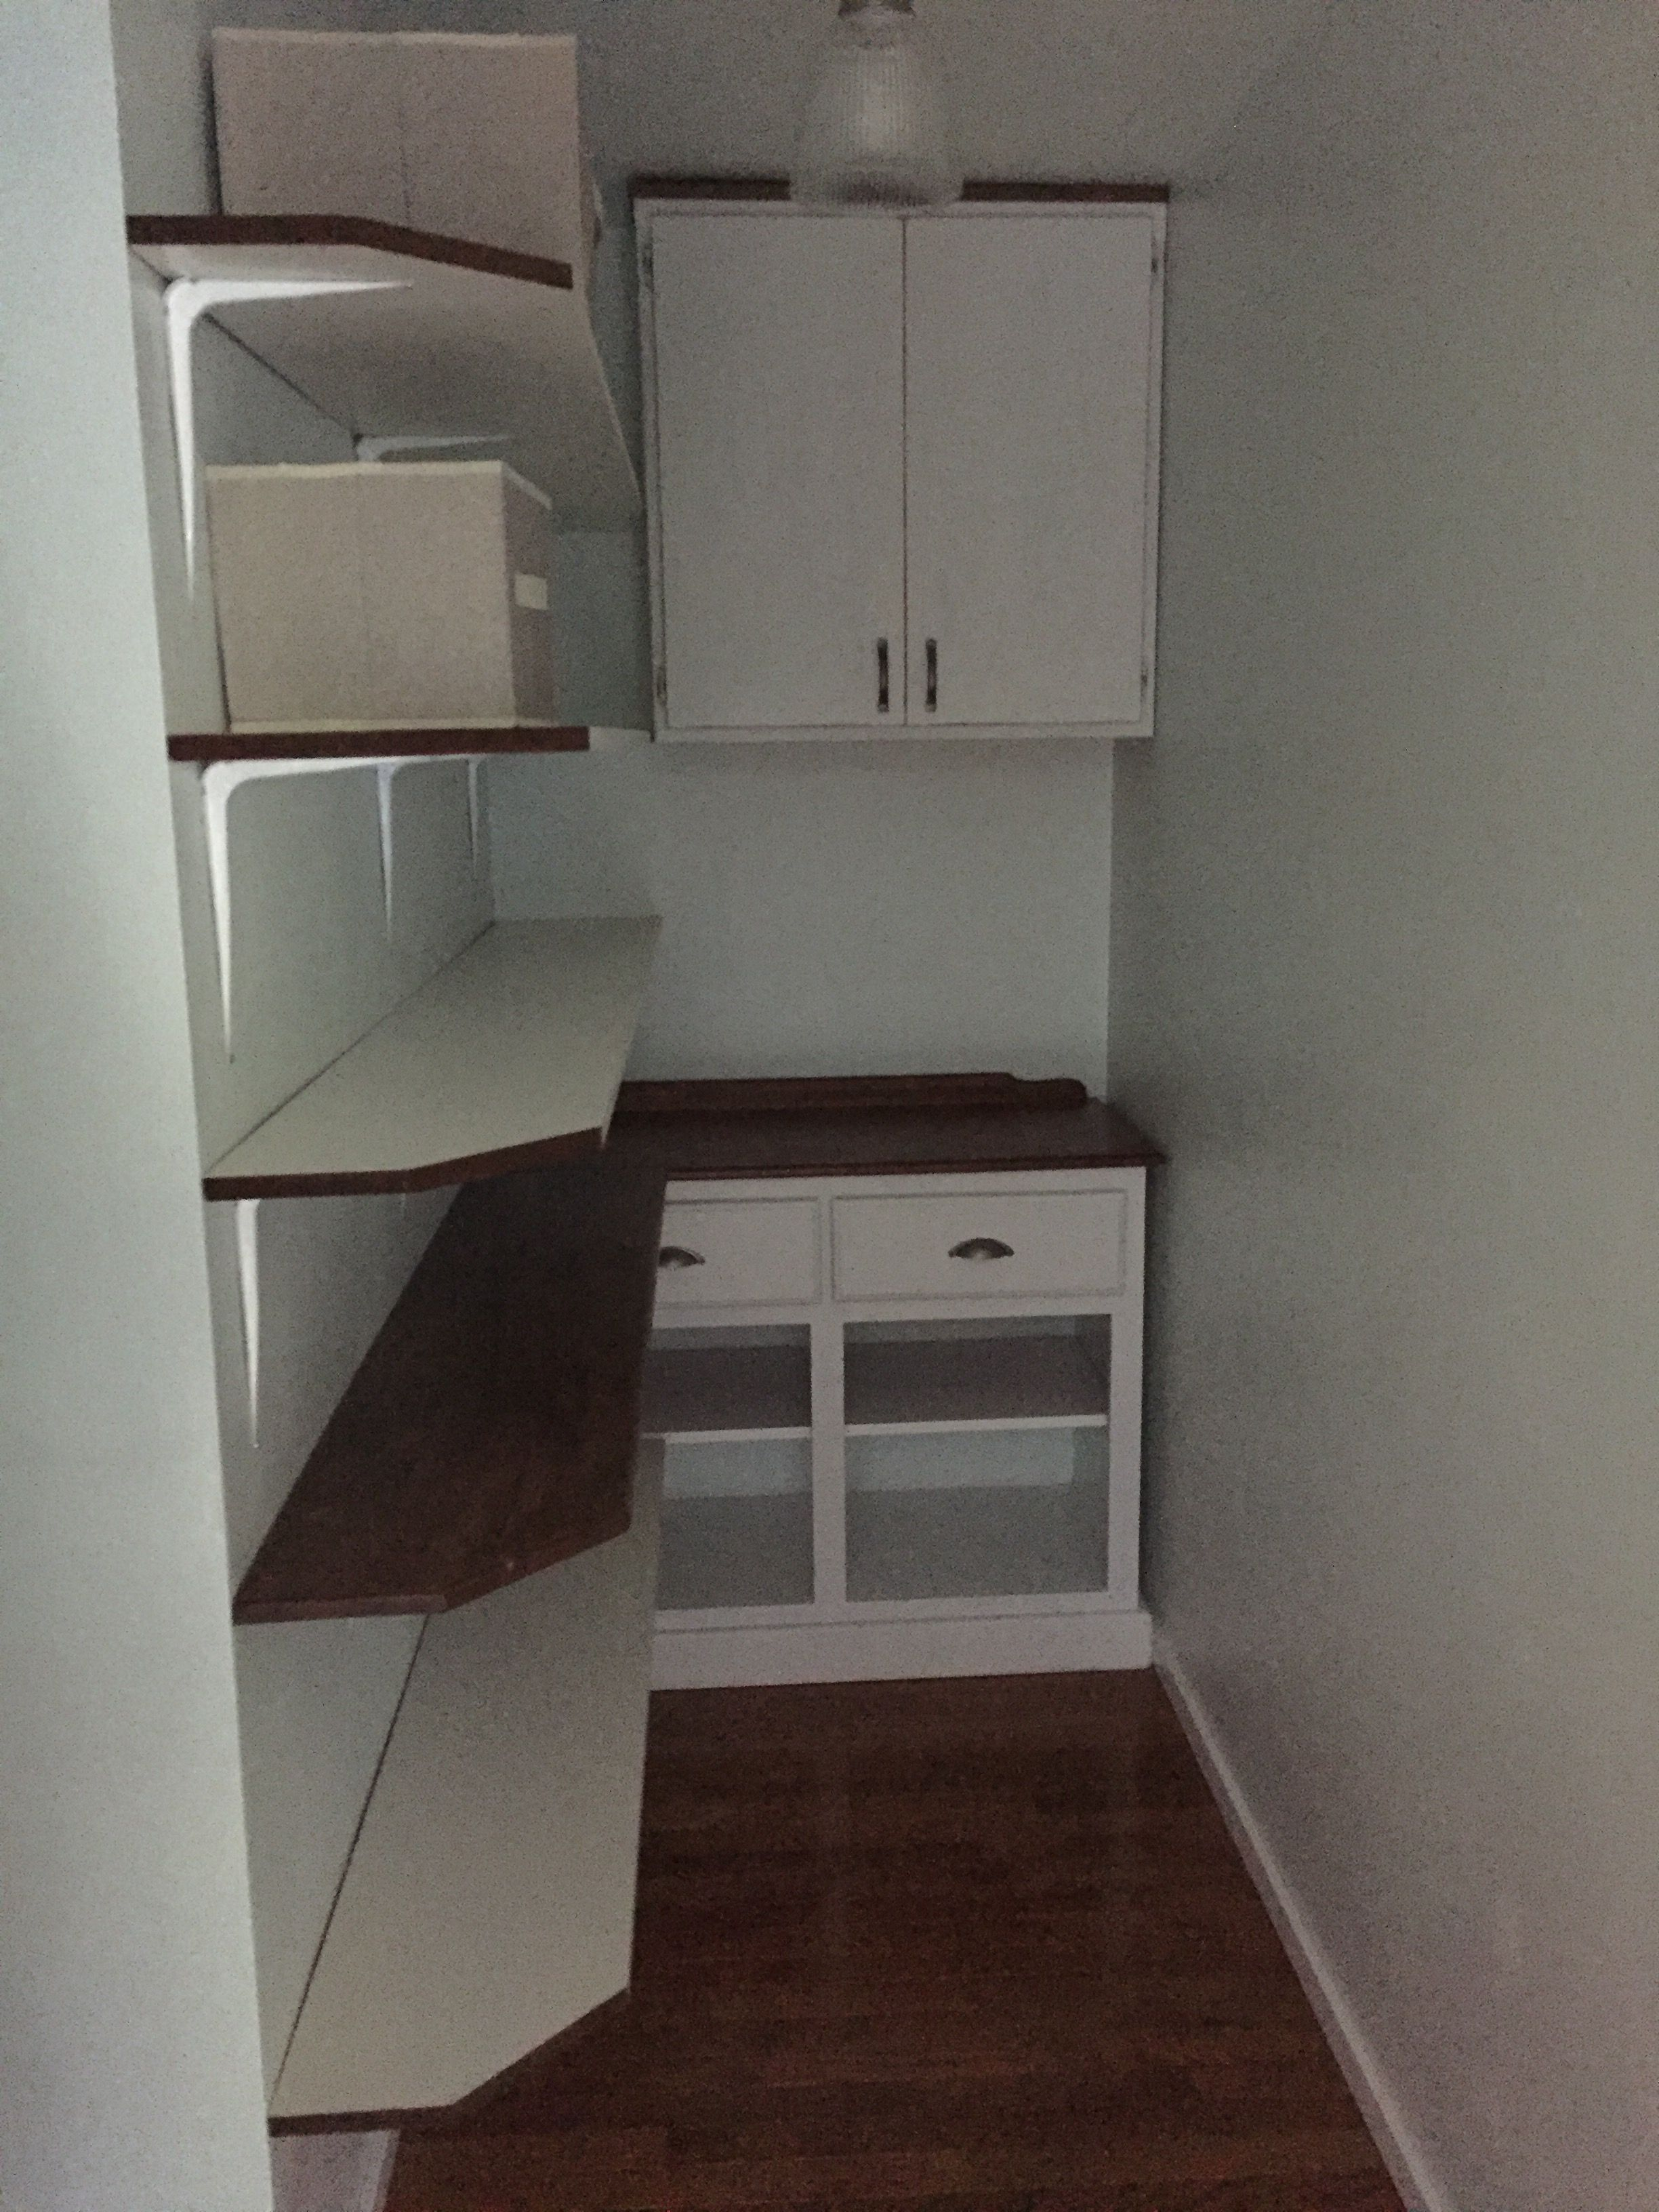 Reused Shelves, Refinished Cabinets And A Deal On Paint